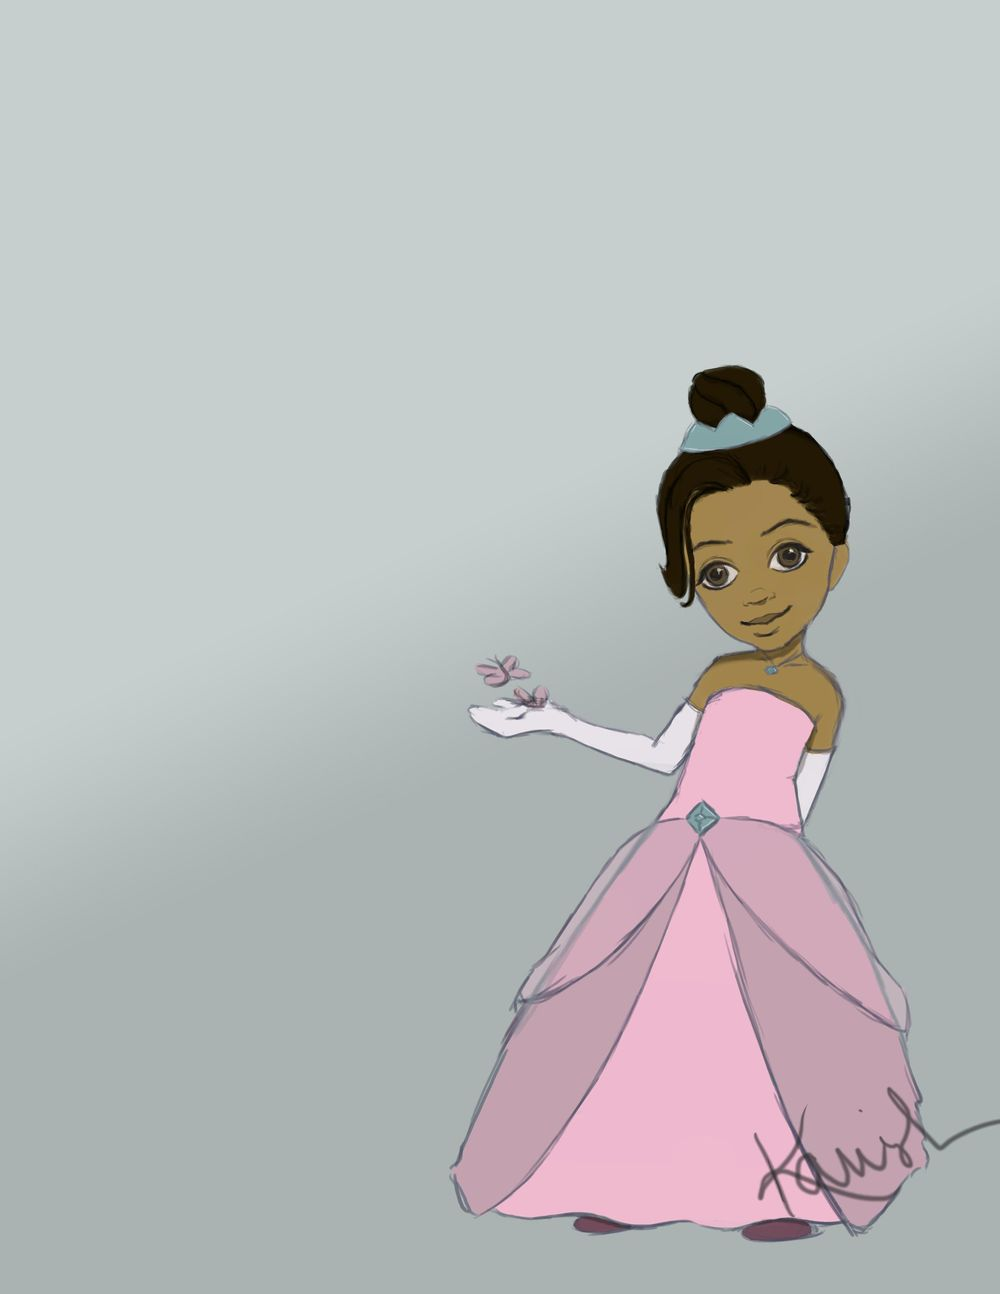 Princess Haylee - image 1 - student project